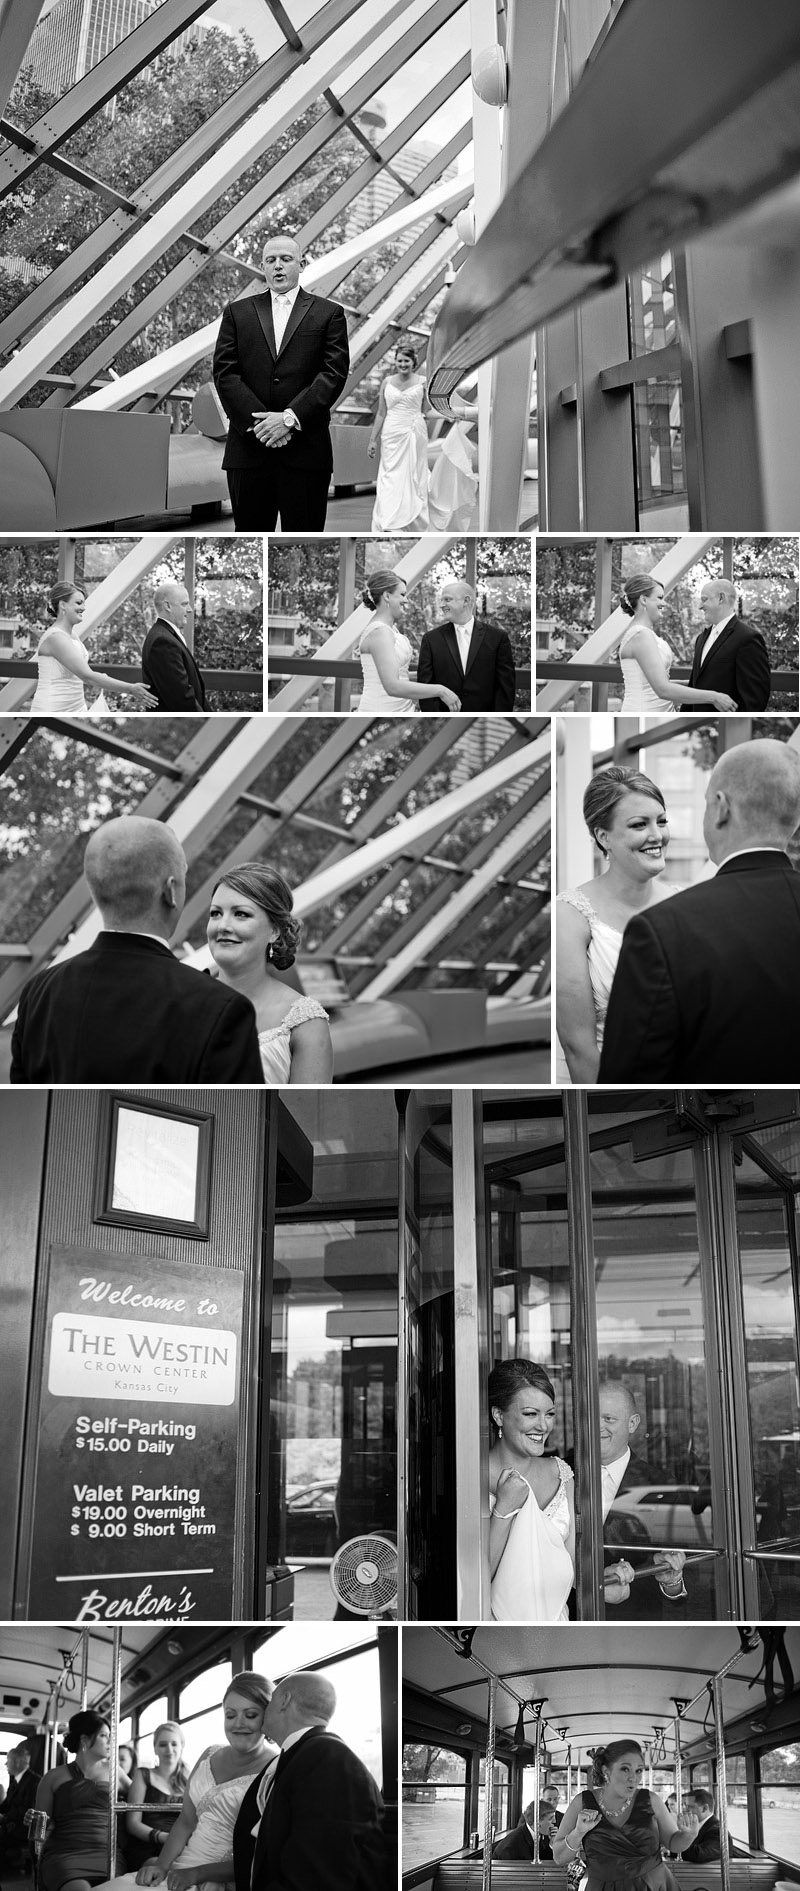 Beautiful first look between a bride and groom.